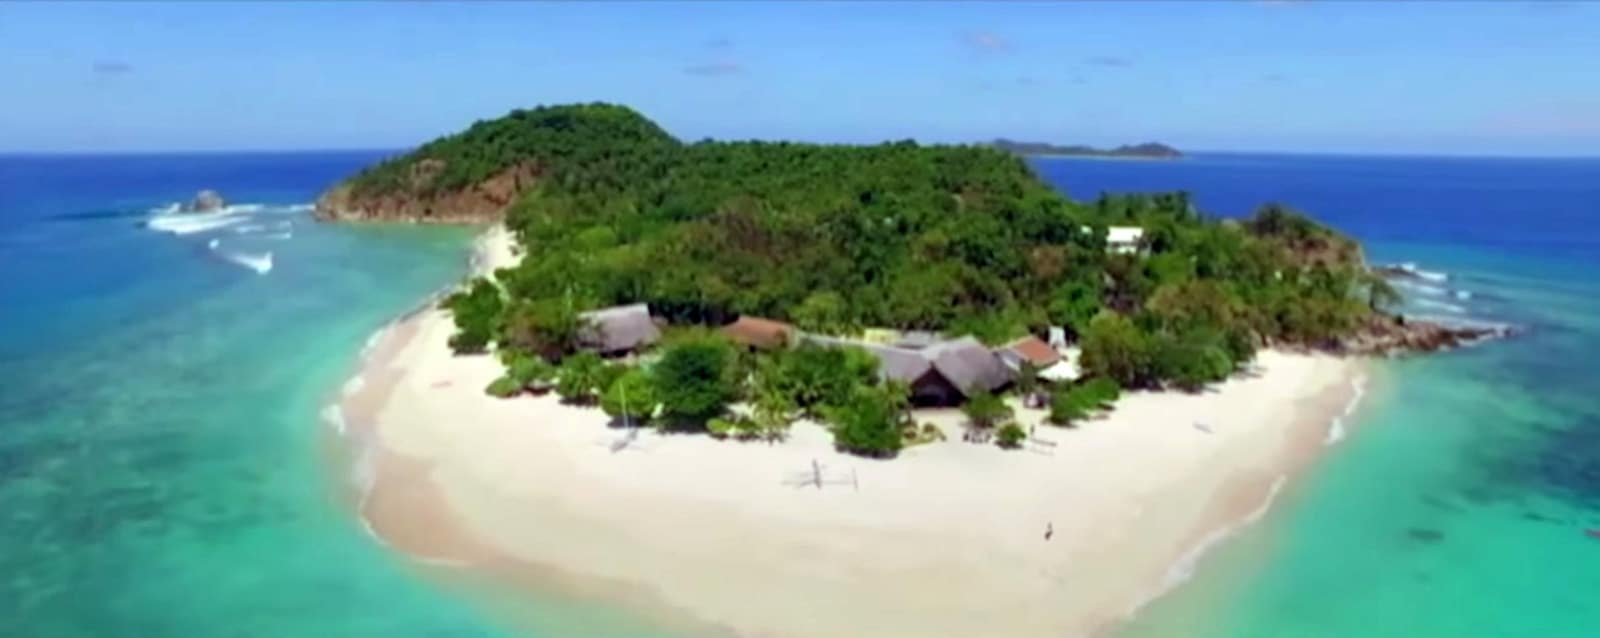 Club Paradise Resort (Dimakya Island) Aerial Shot